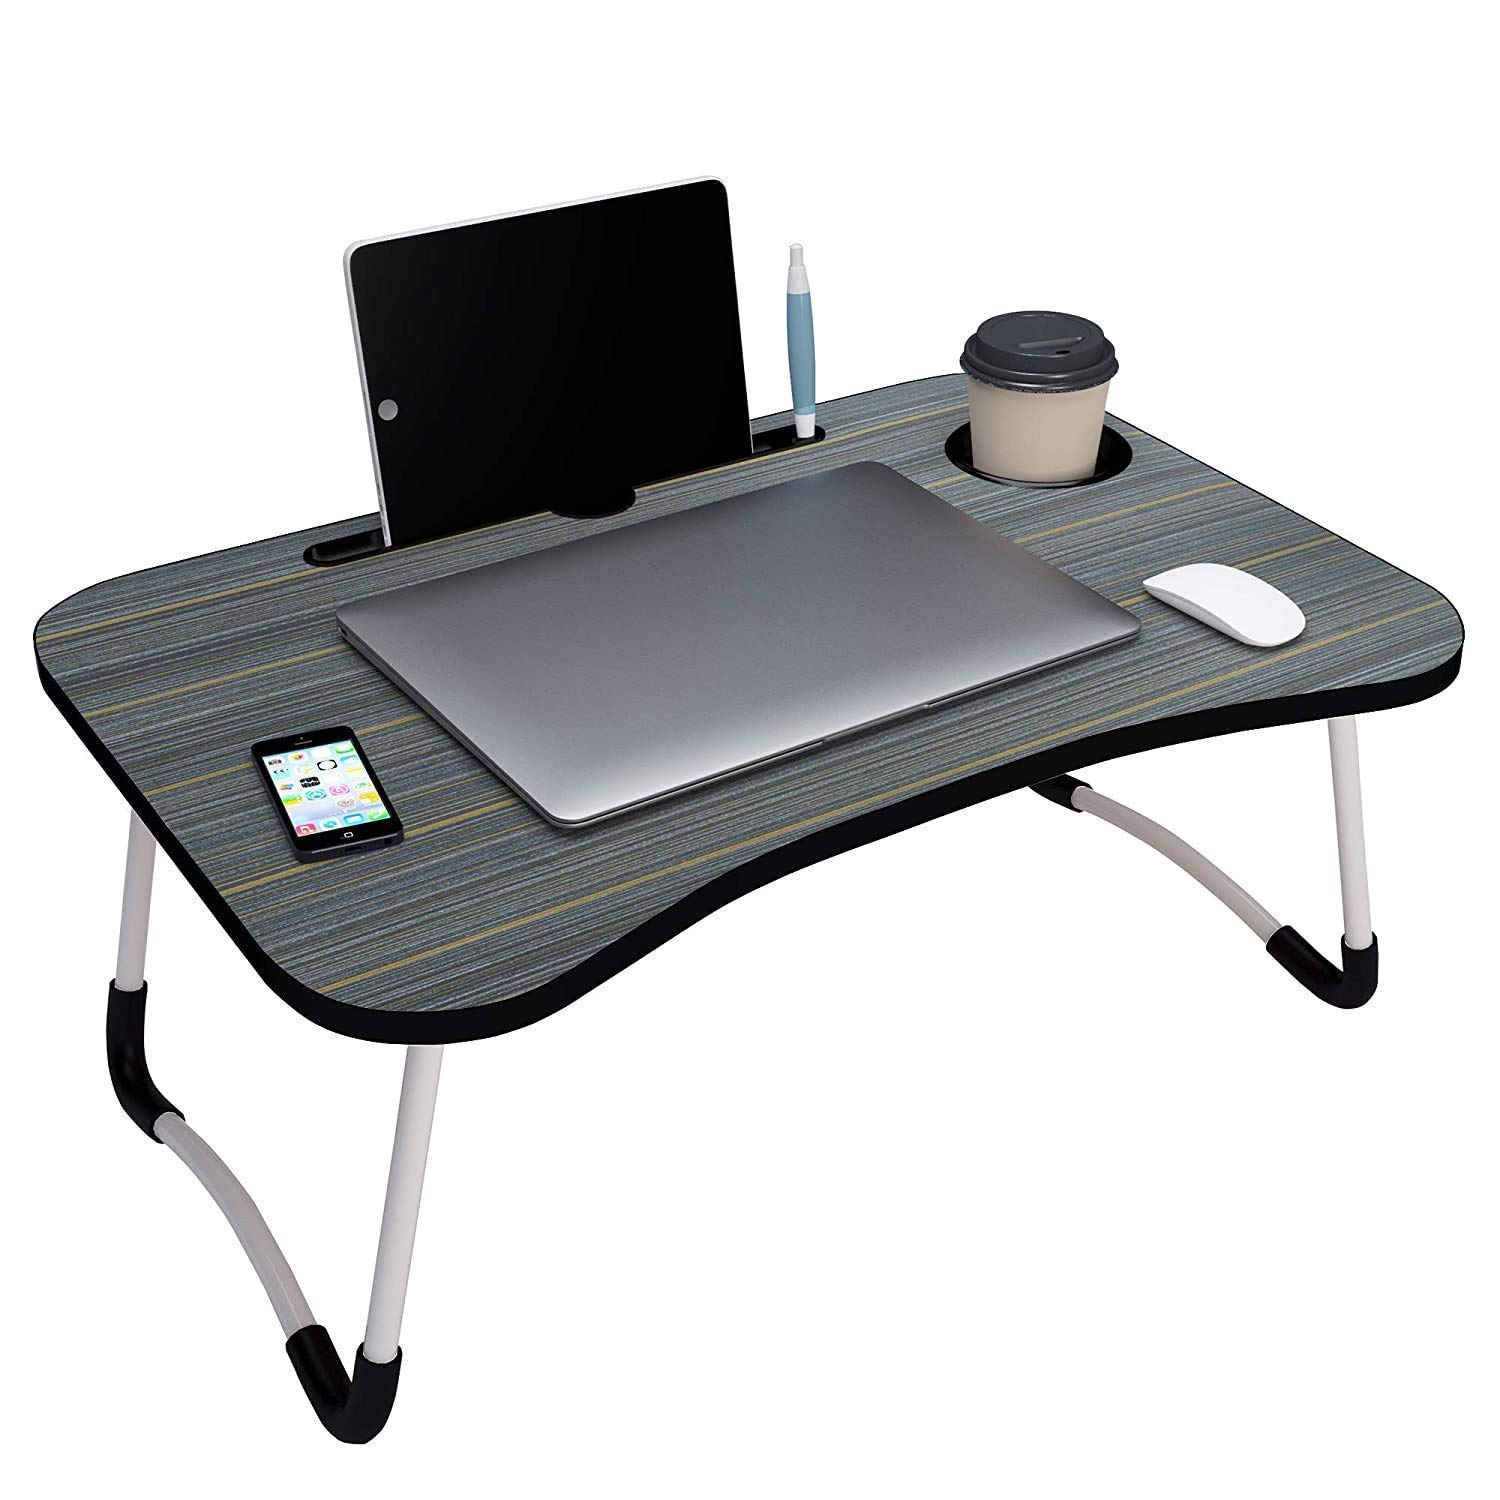 Shayonam Smart Multi-Purpose Laptop Table with Dock Stand & Cup Holder| Foldable| Study Table| Bed Table| Ideal for Work from Home| Kids & Adults (Bla